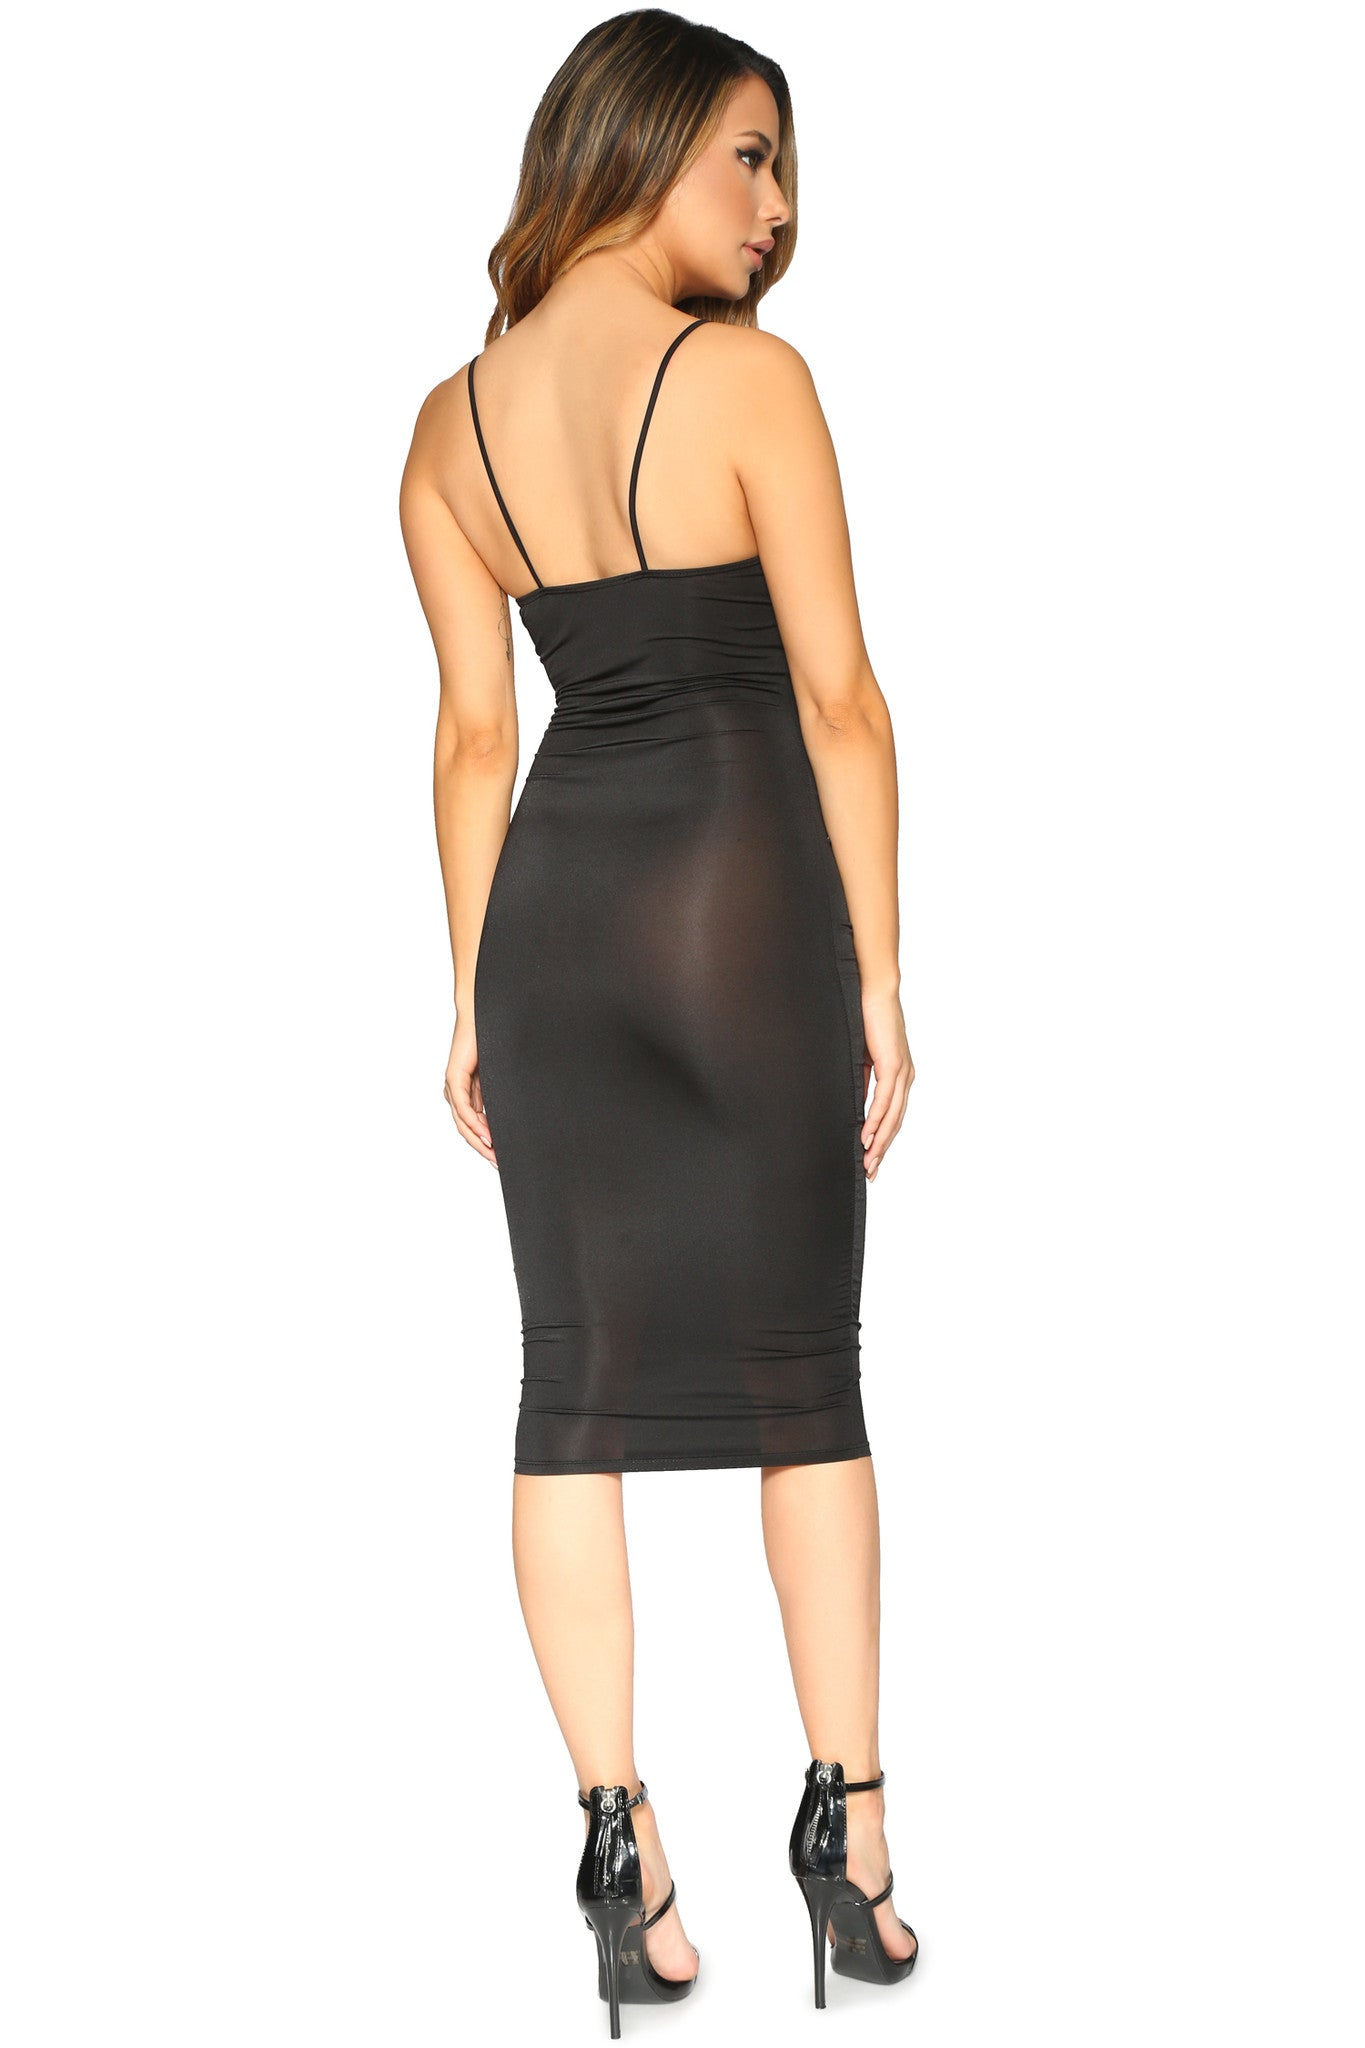 PATRICIA DRESS BLACK GLAM ENVY BACK PROFILE